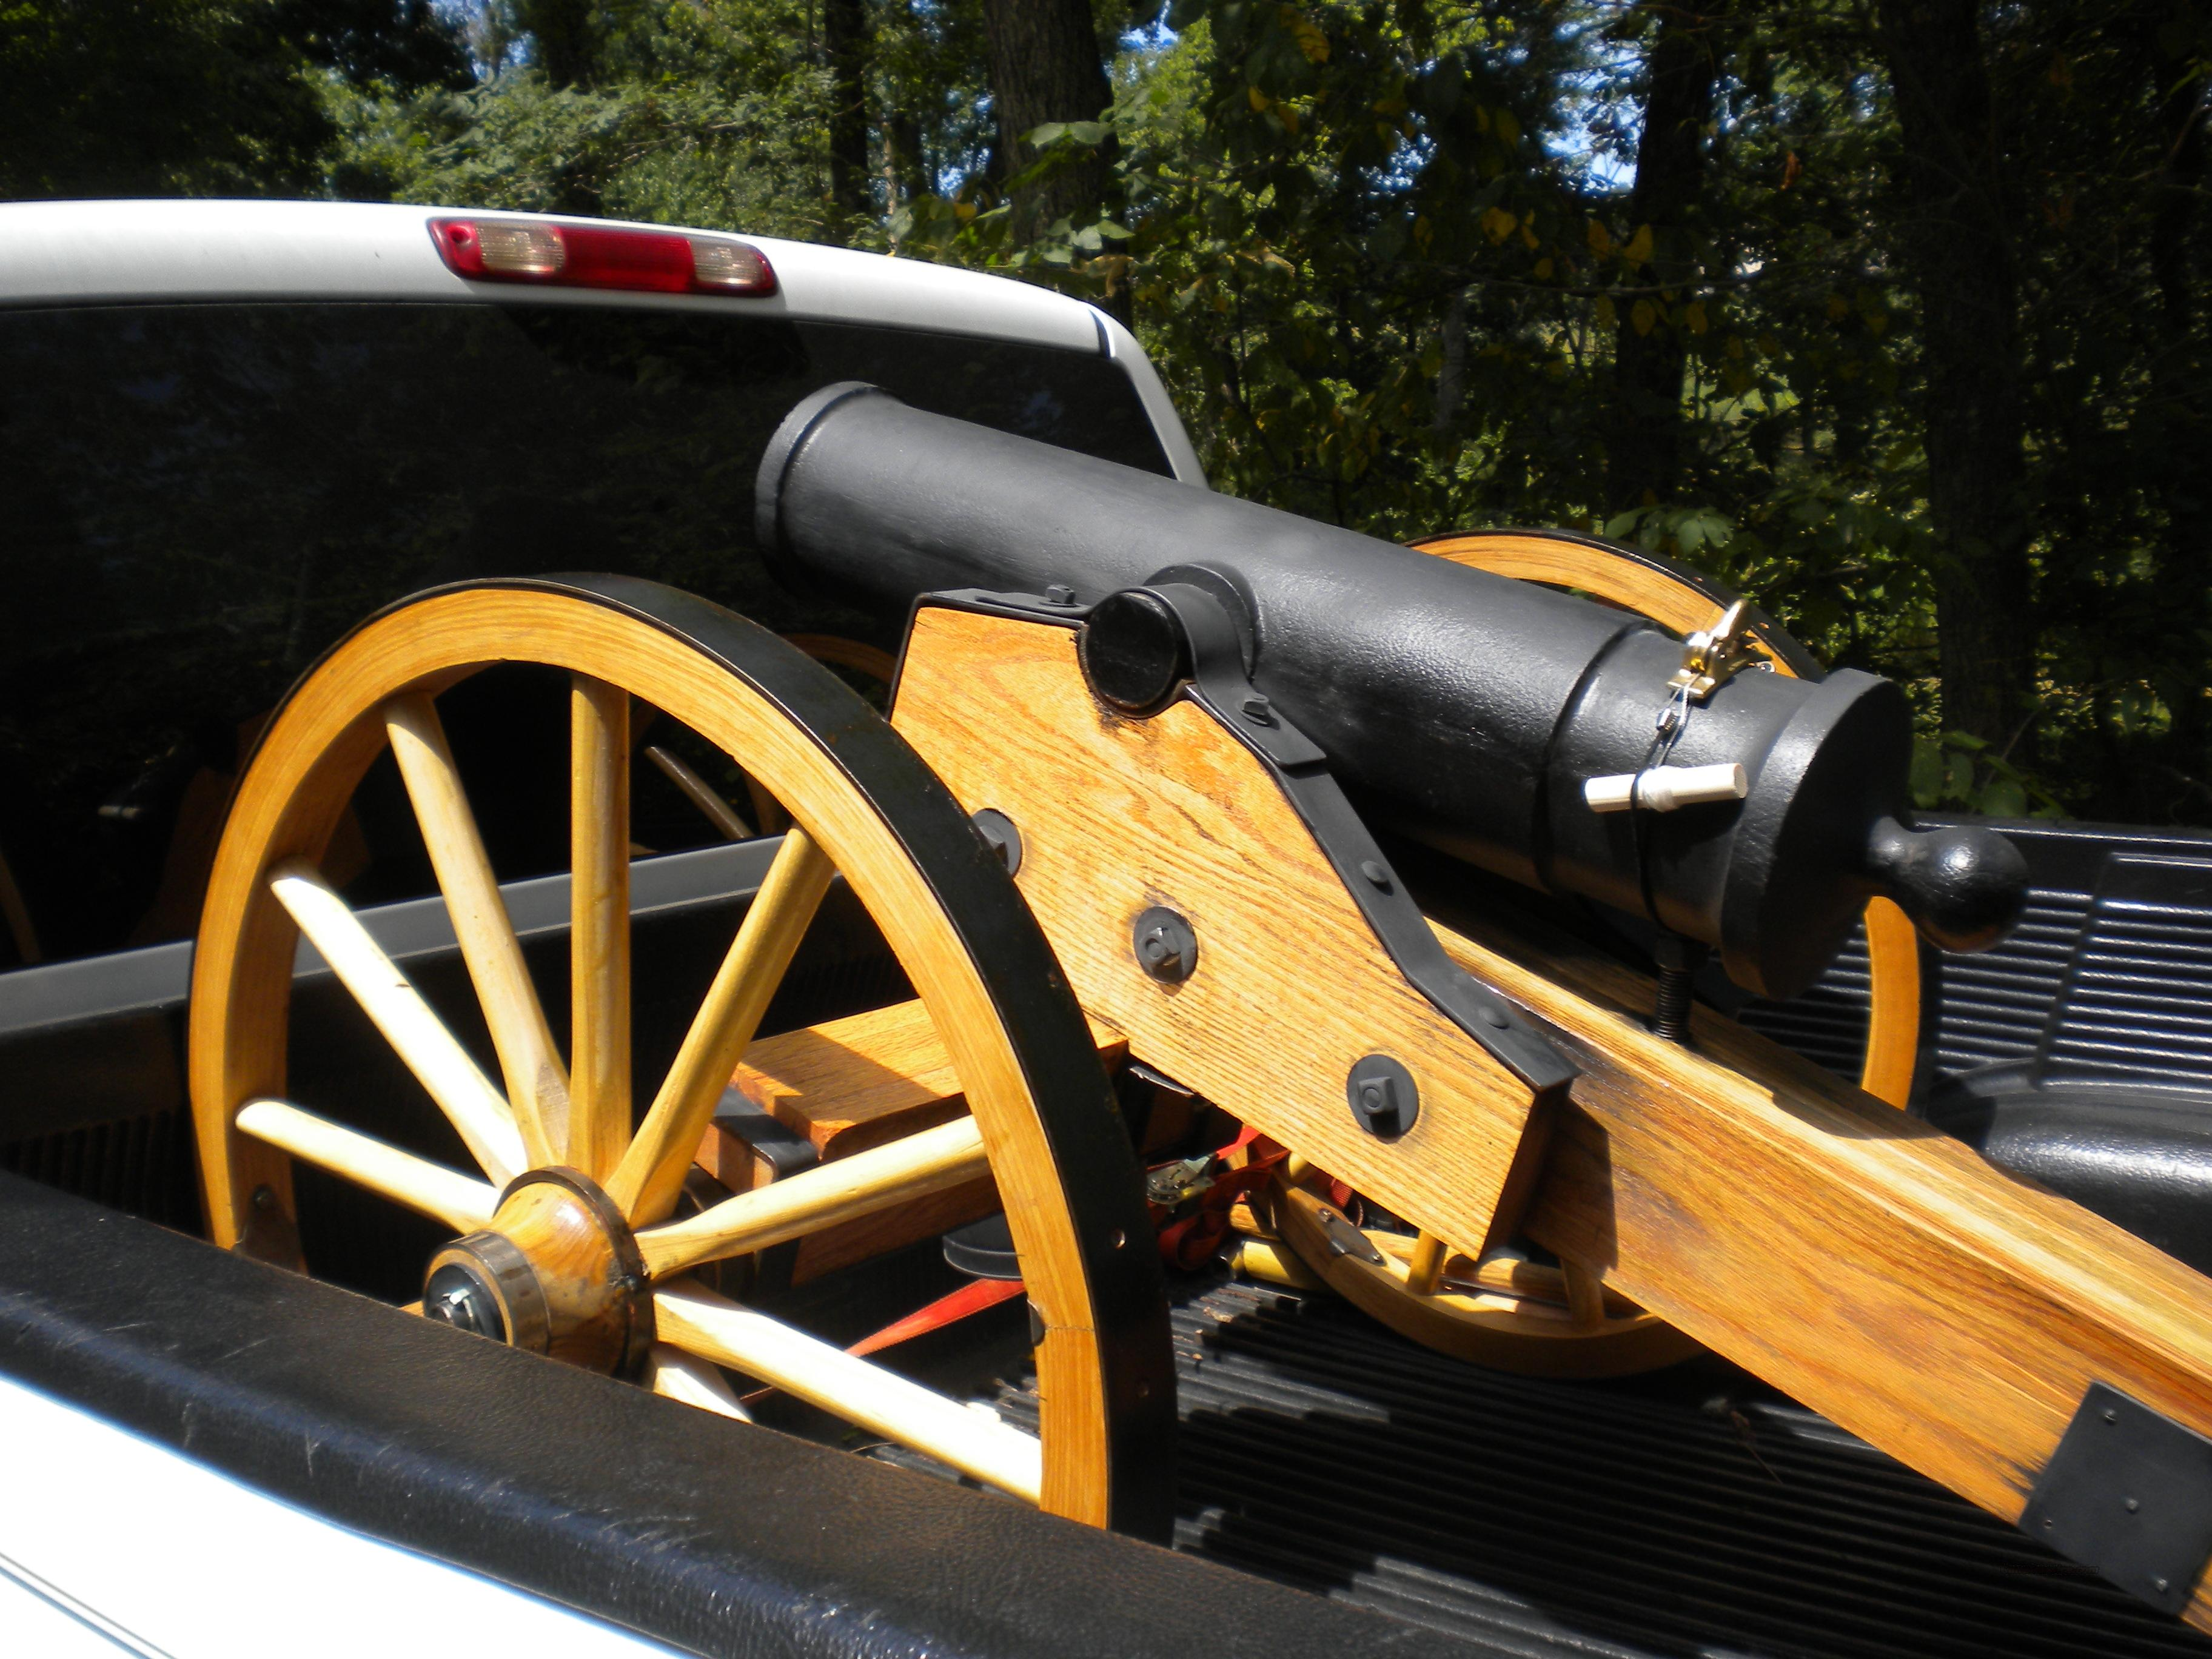 Mt Howitzer  Guns > Rifles > Cannons > Cannons & Field Artilery